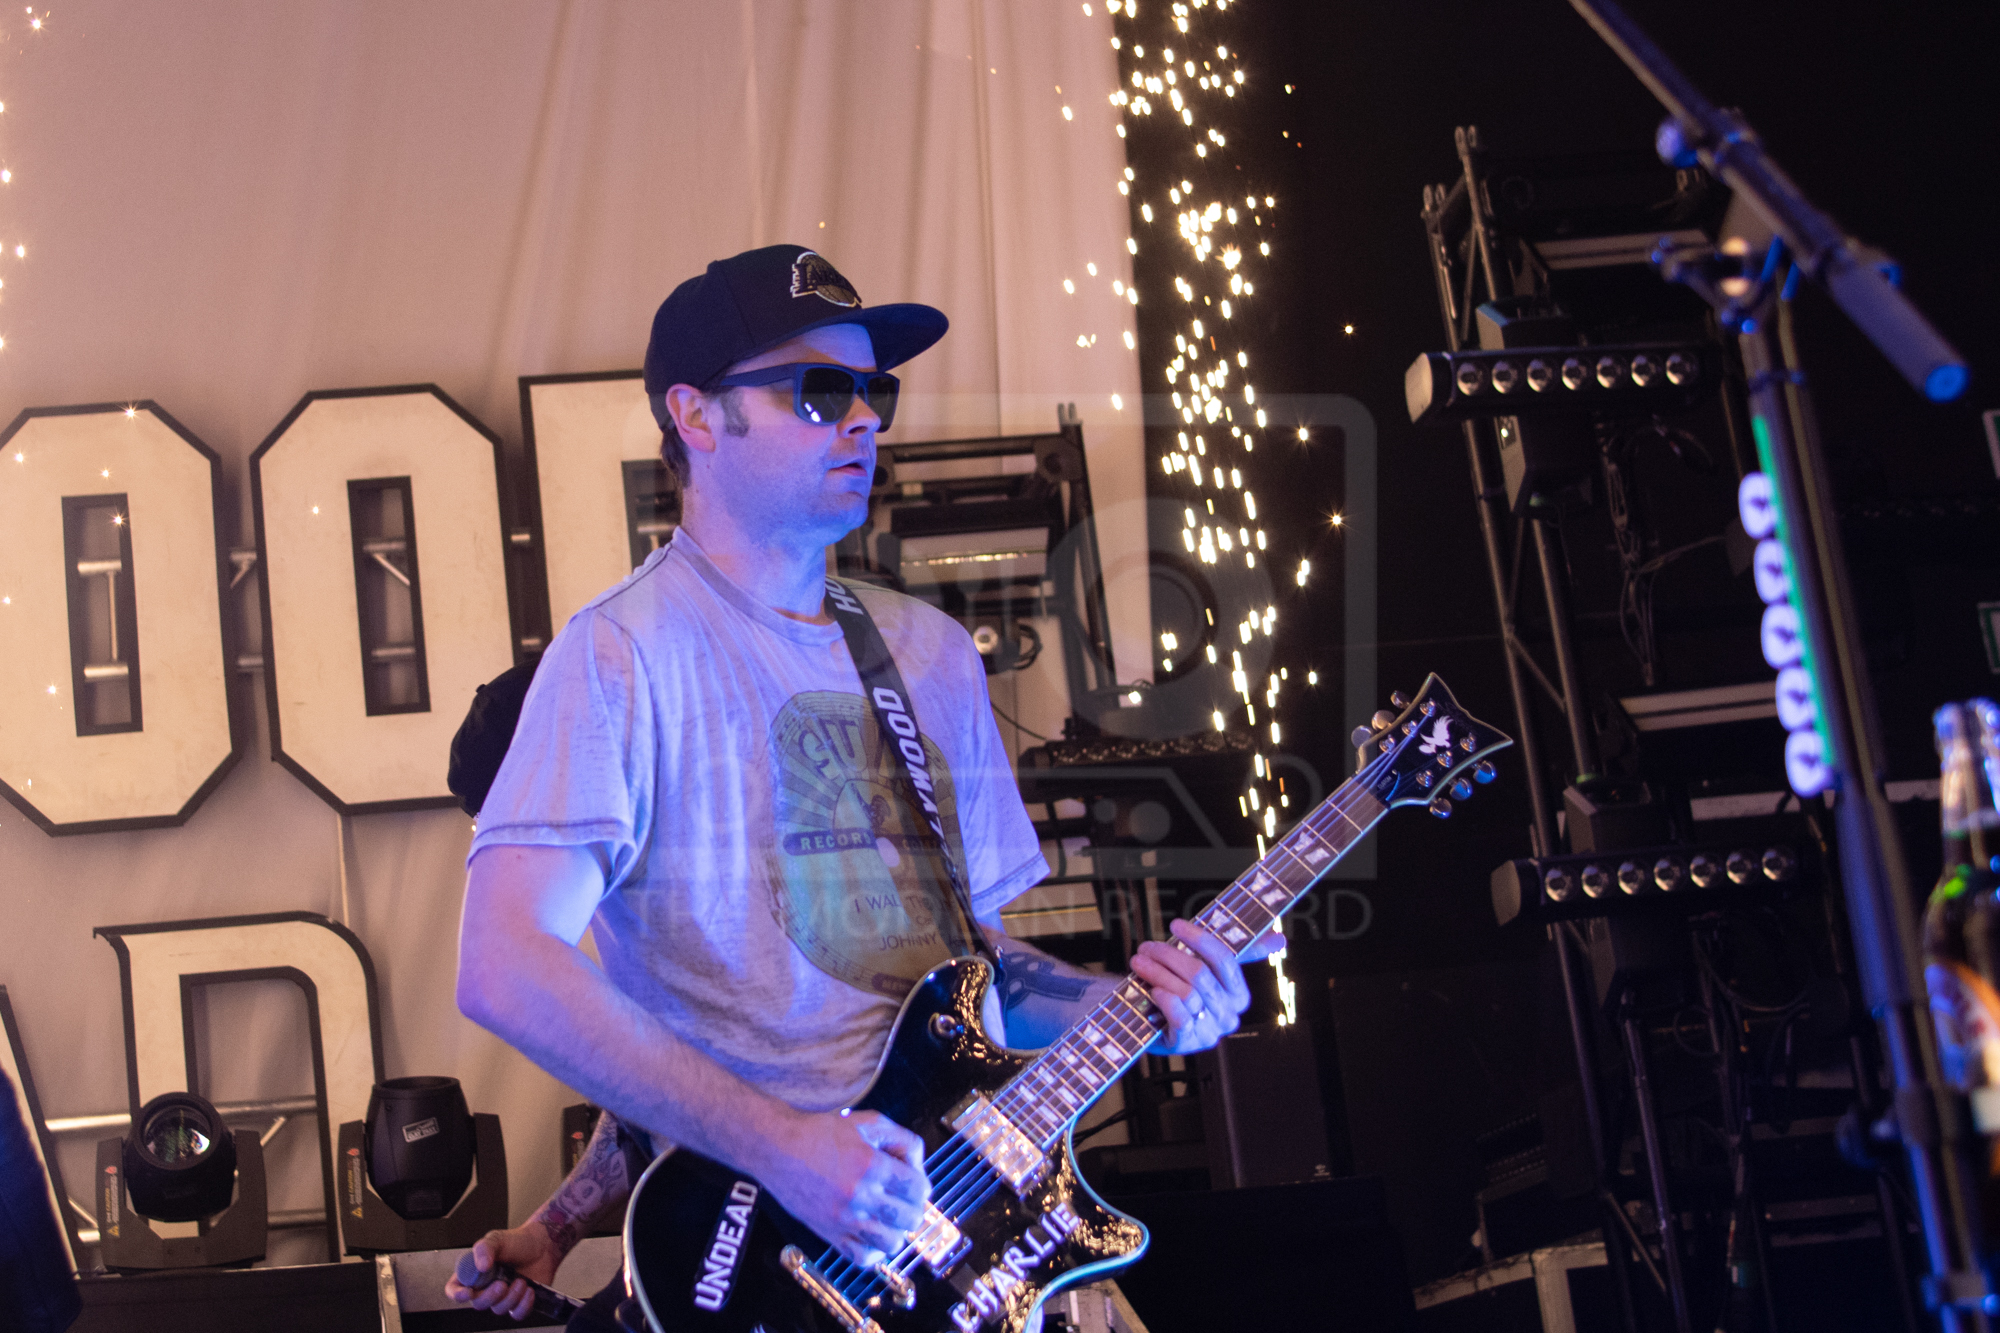 Hollywood Undead - 01.05.19 - PICTURE BY WILL GORMAN PHOTOGRAPHY-2939.JPG